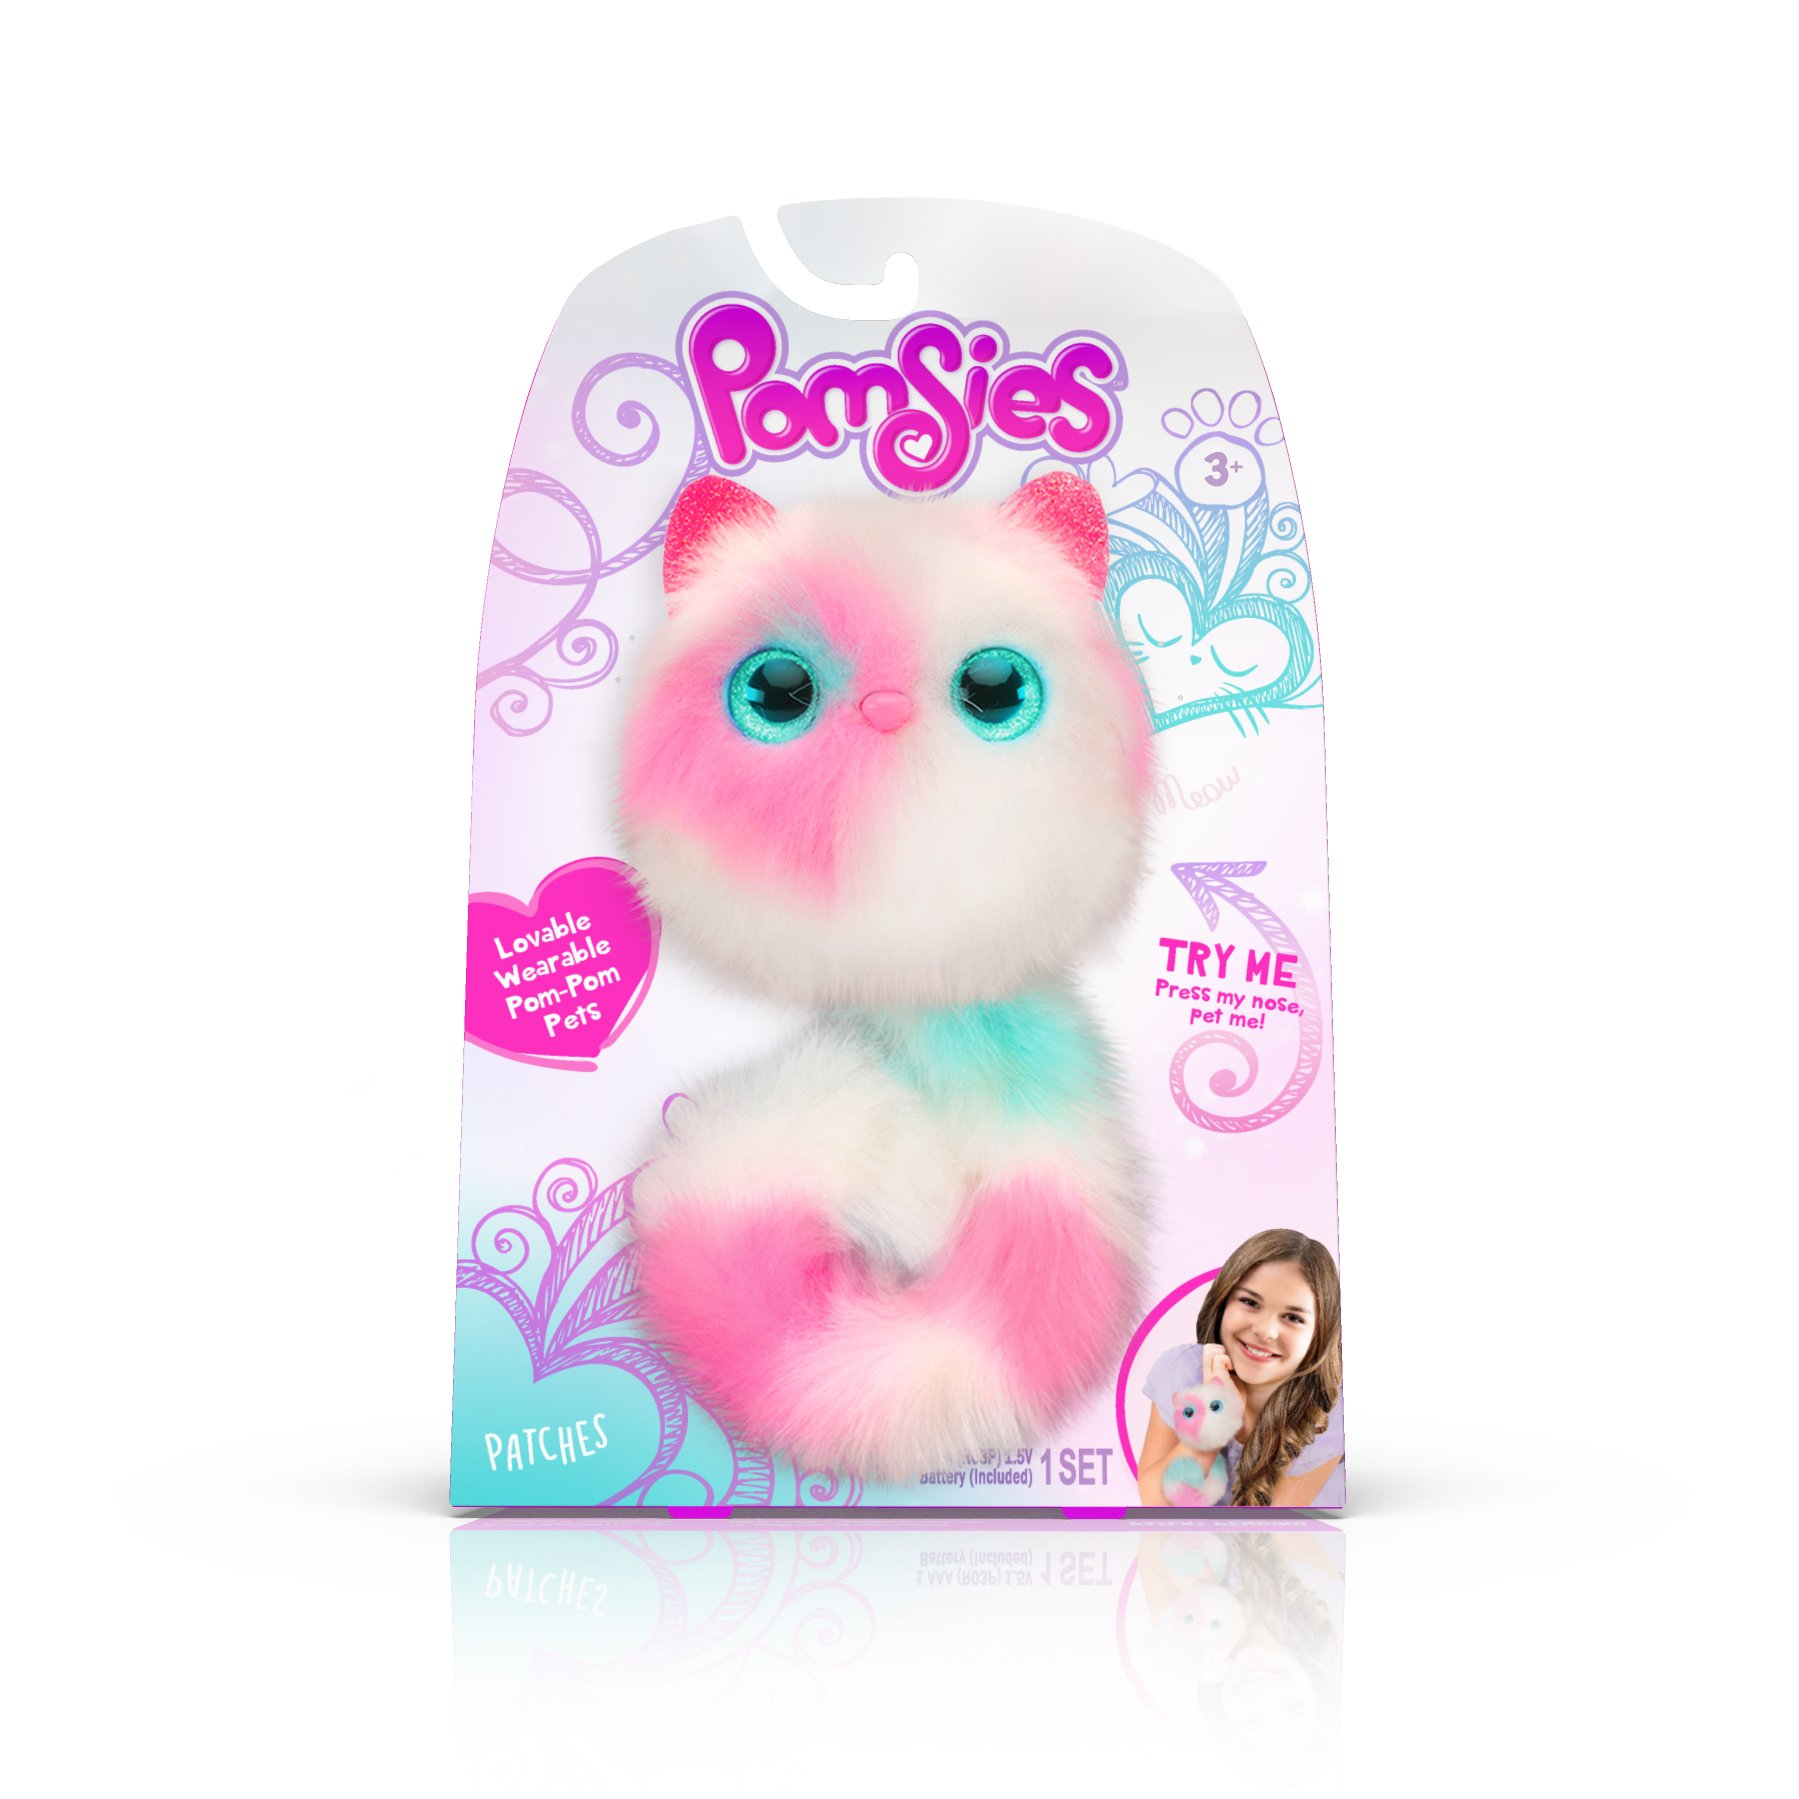 Pomsies Patches Plush Interactive Toys, White/Pink/Mint by Pomsies (Image #1)